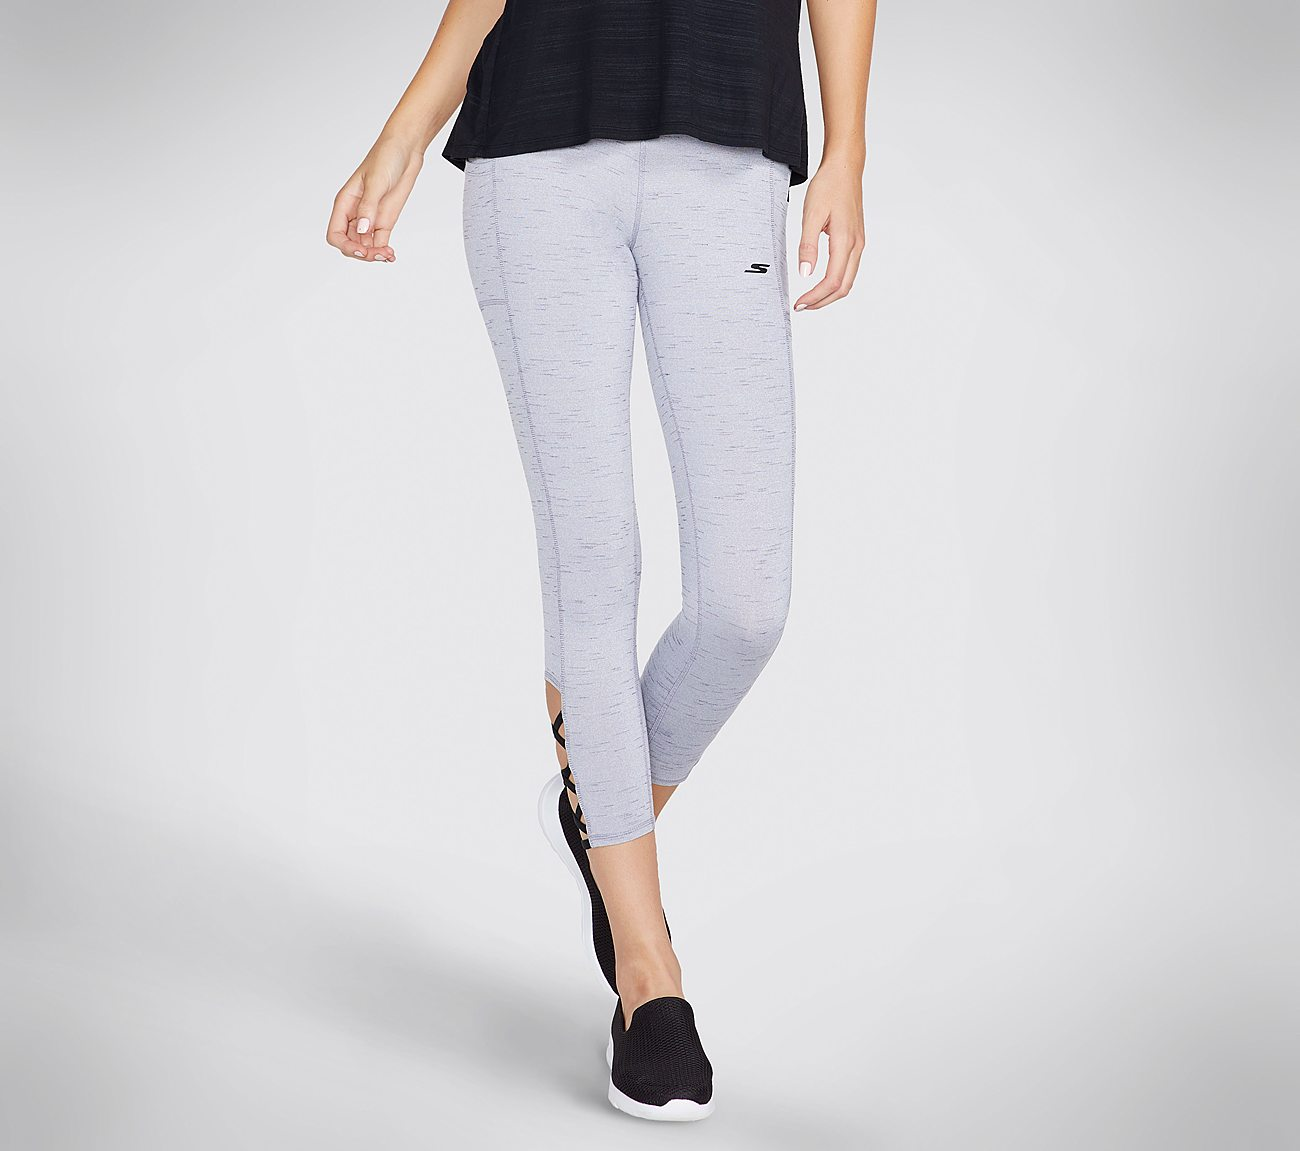 Skechers Performance Apparel Intention Legging